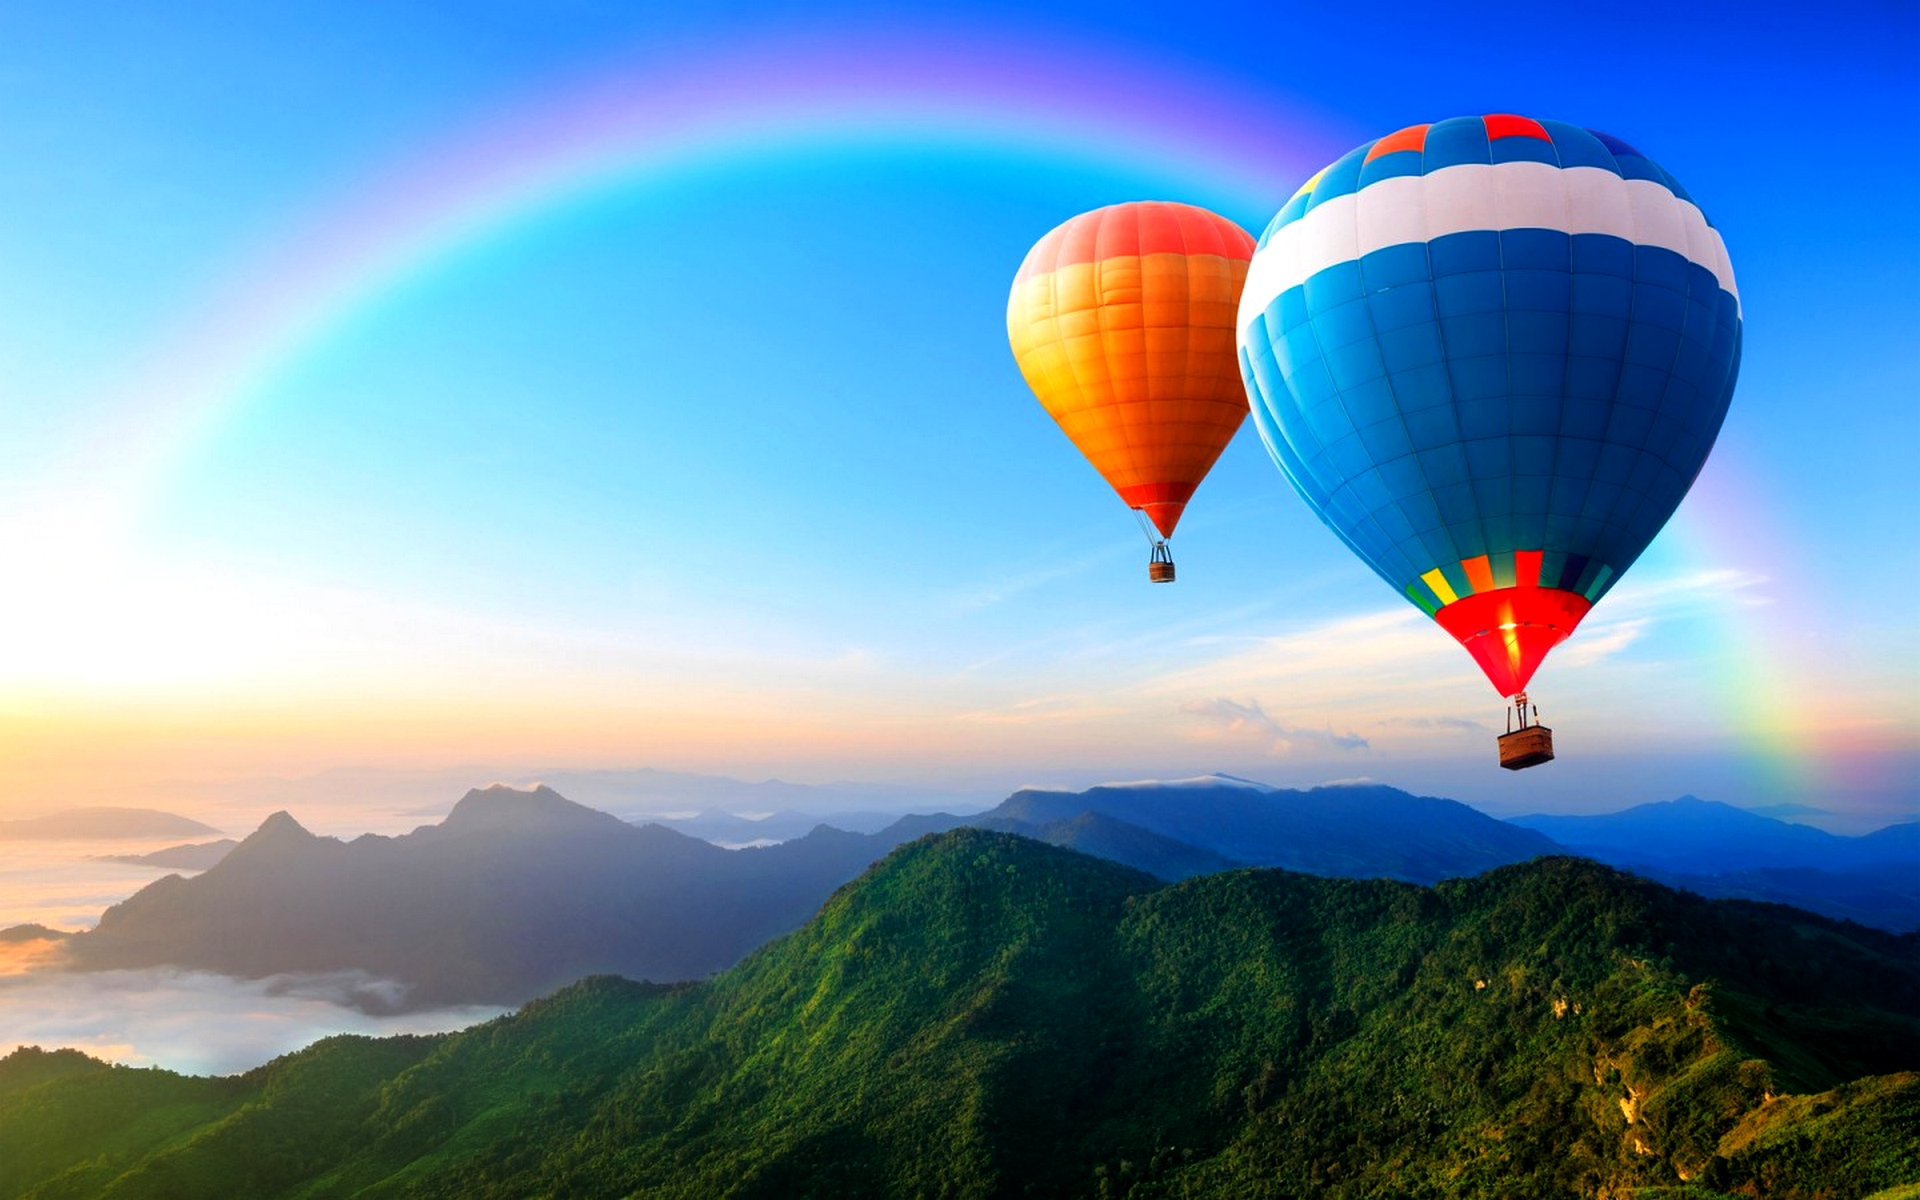 Stunning Hot Air Balloon Wallpaper 19613 1920x1200 px